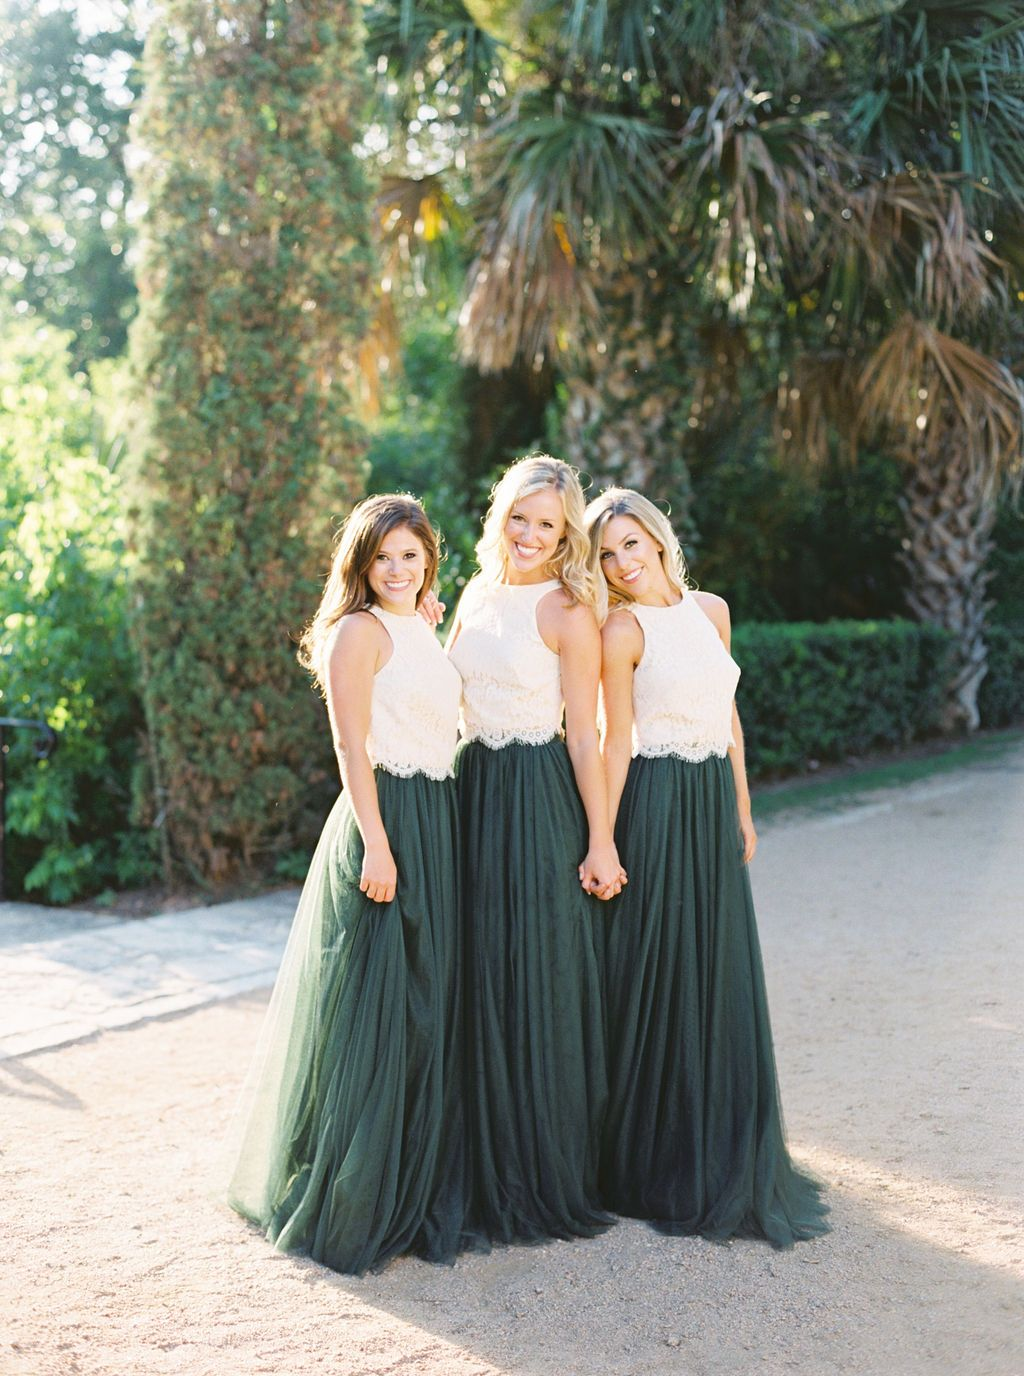 45203af844 Our bridesmaid tops paired with our Skylar tulle skirt in shades dusty blue  go perfectly with just about any wedding theme or season! Order a sample  box to ...